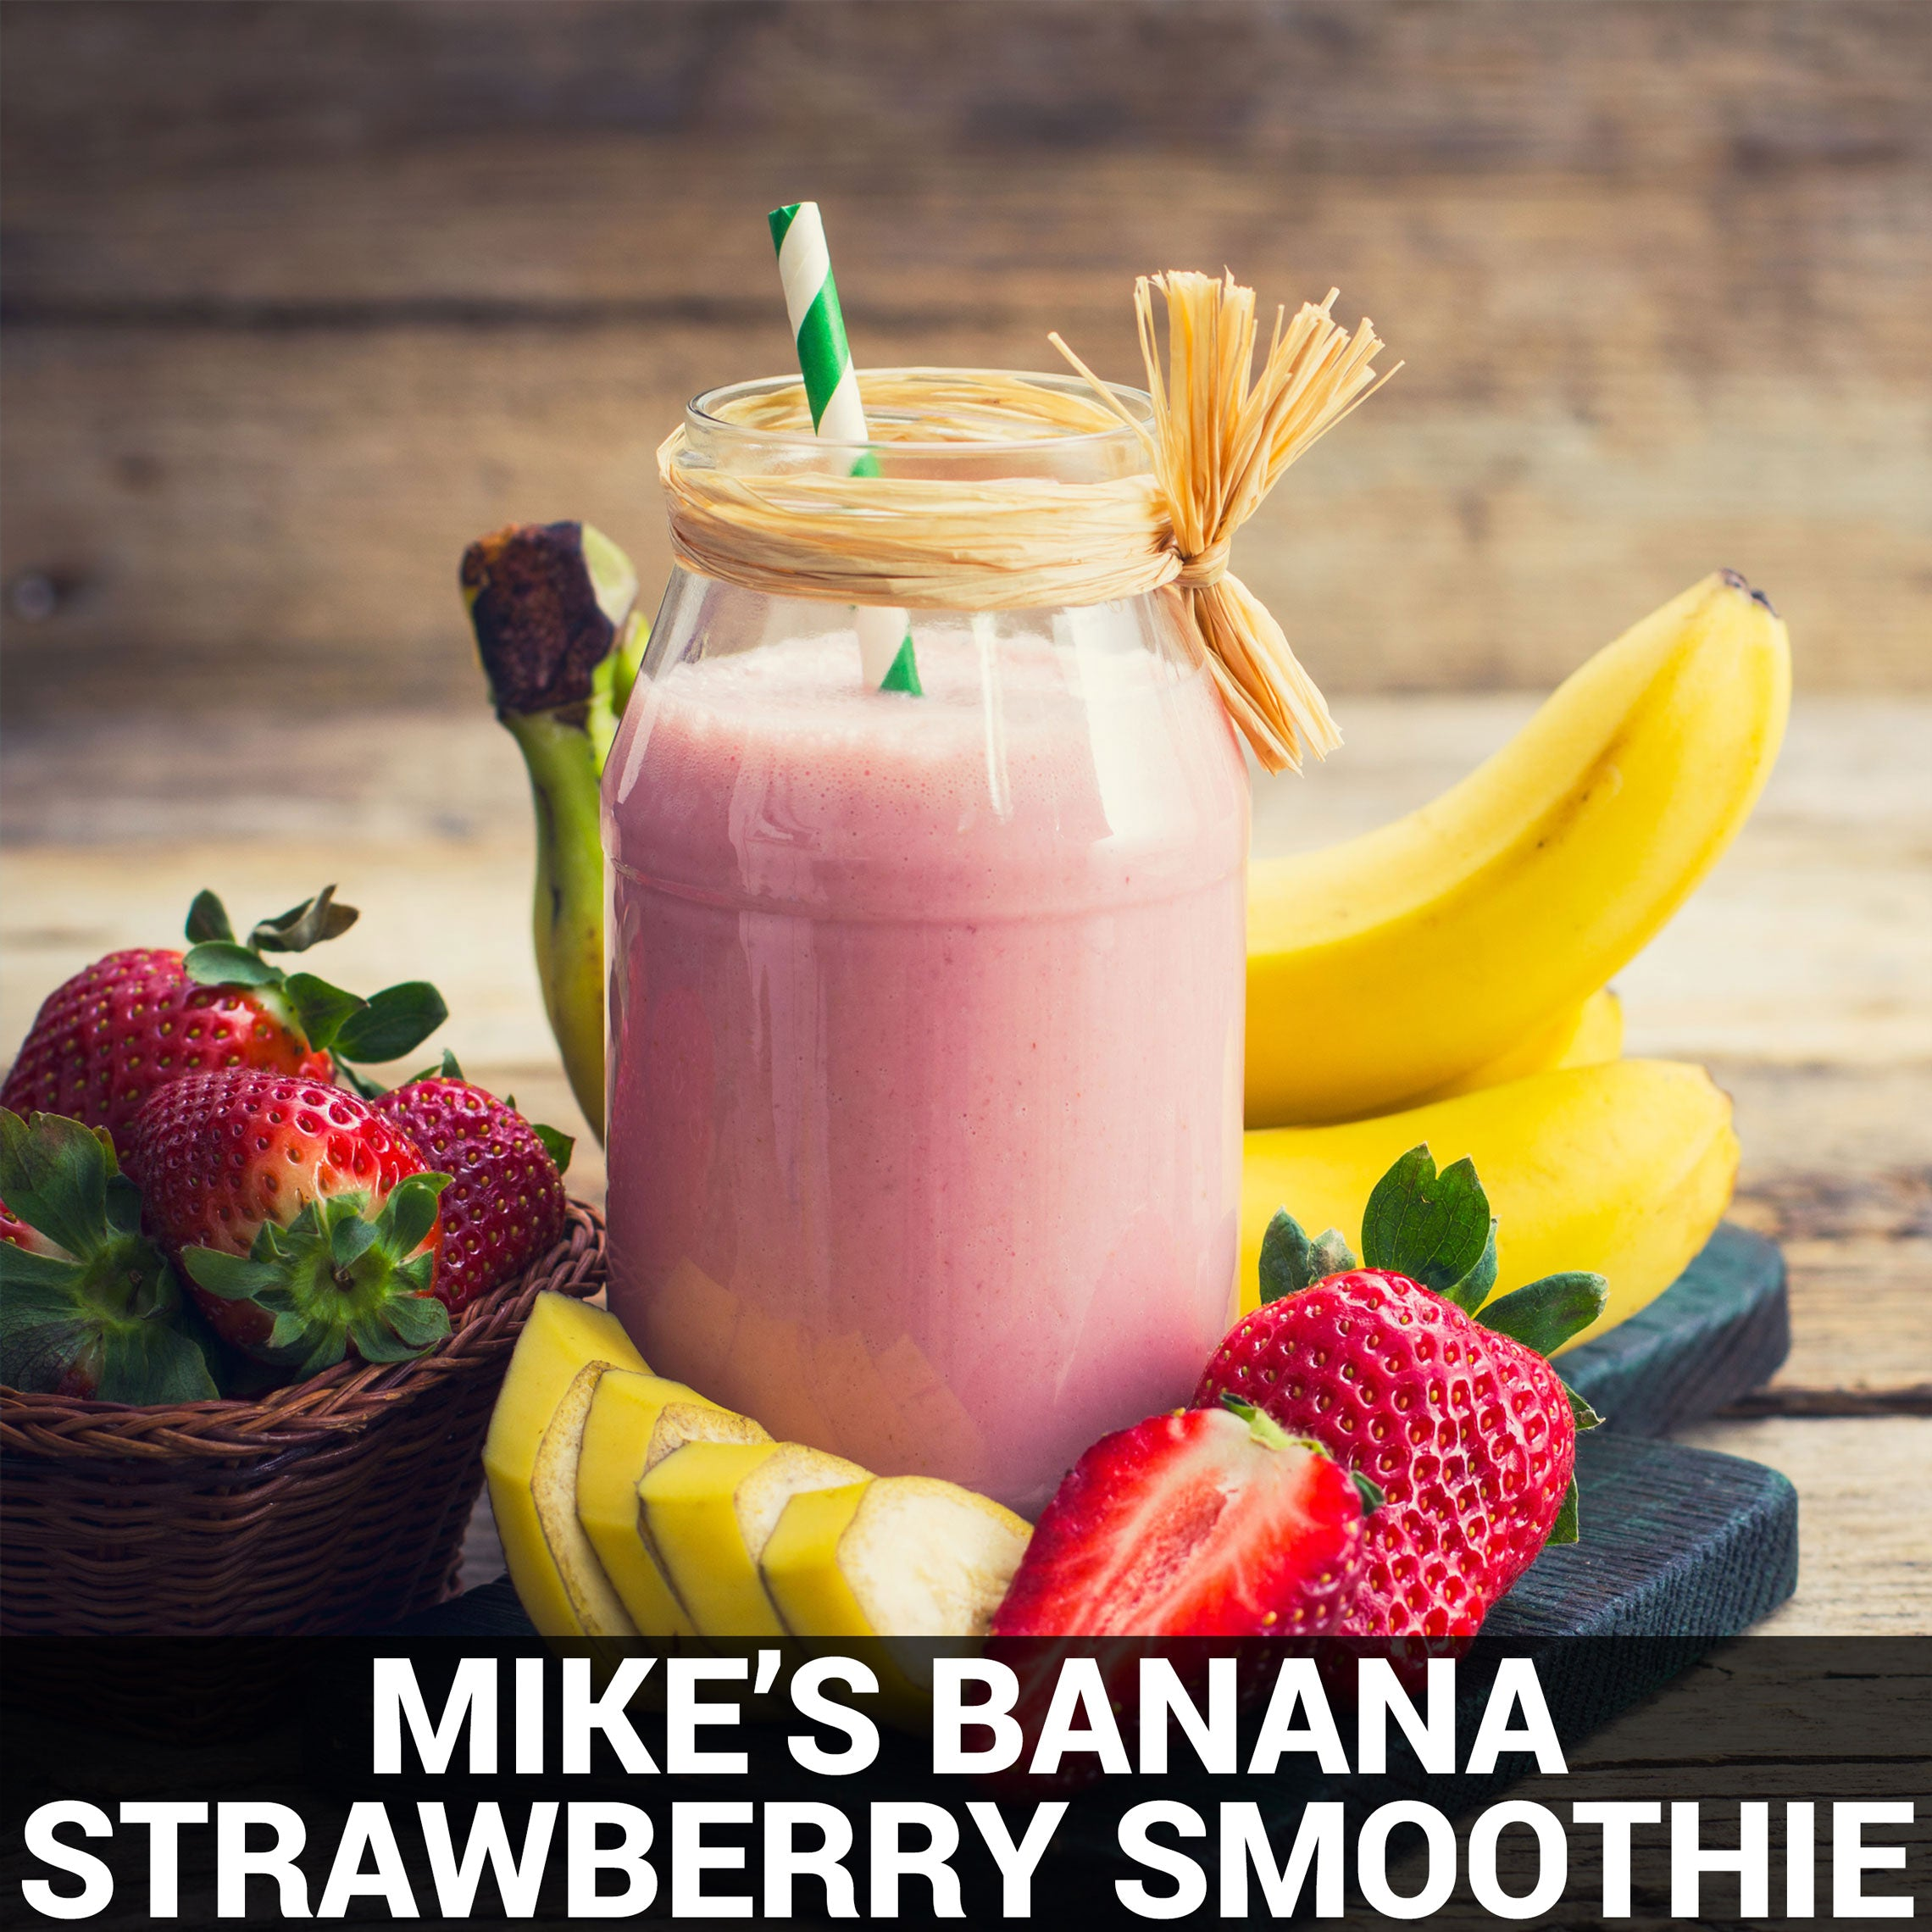 Mike's Banana Strawberry Smoothie Recipe - Foods Alive